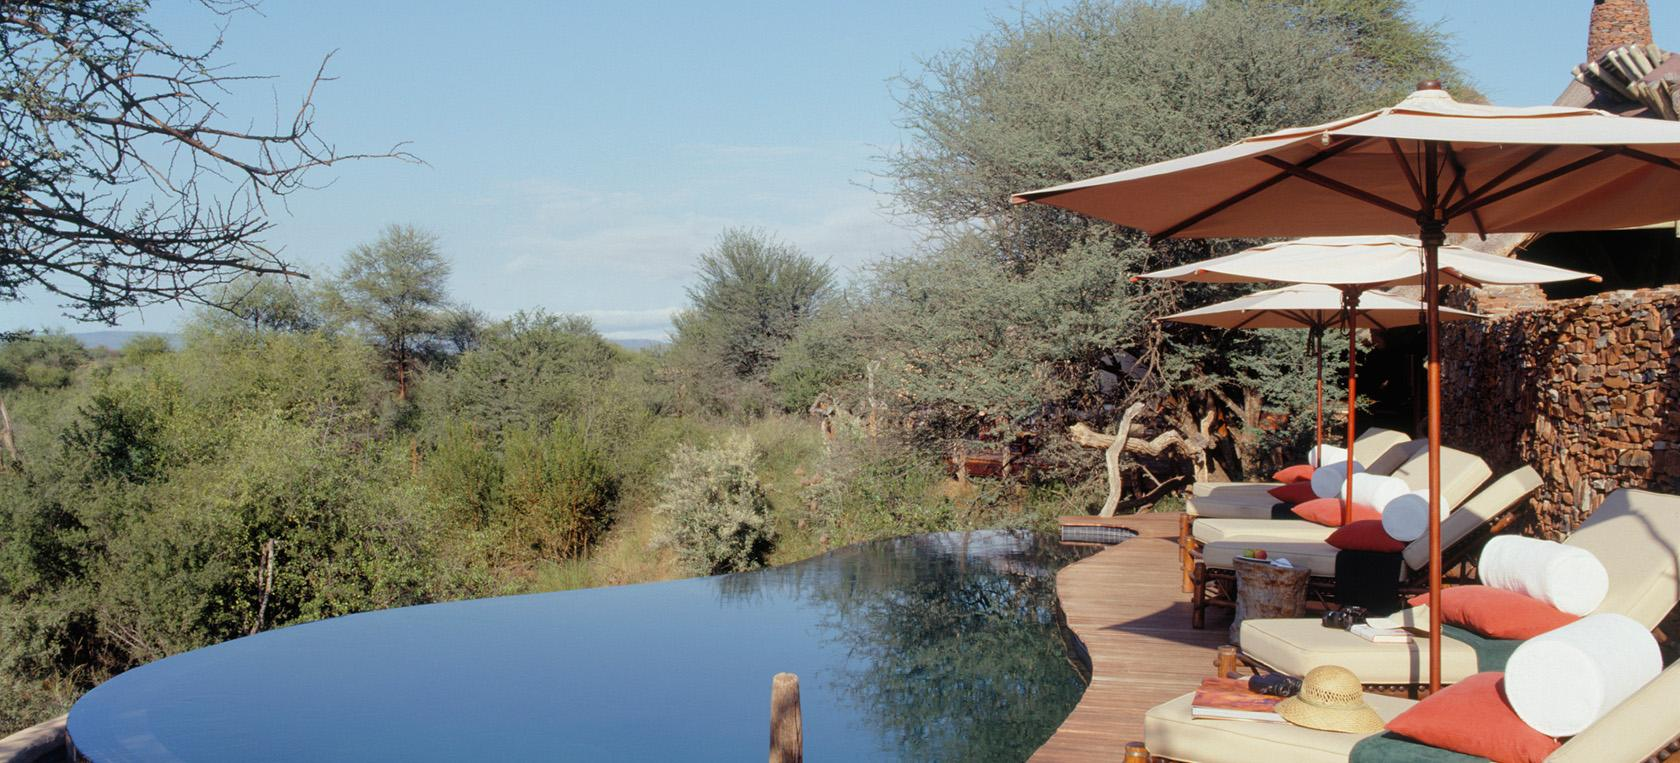 Top Rated Luxury Safari Lodges In Africa